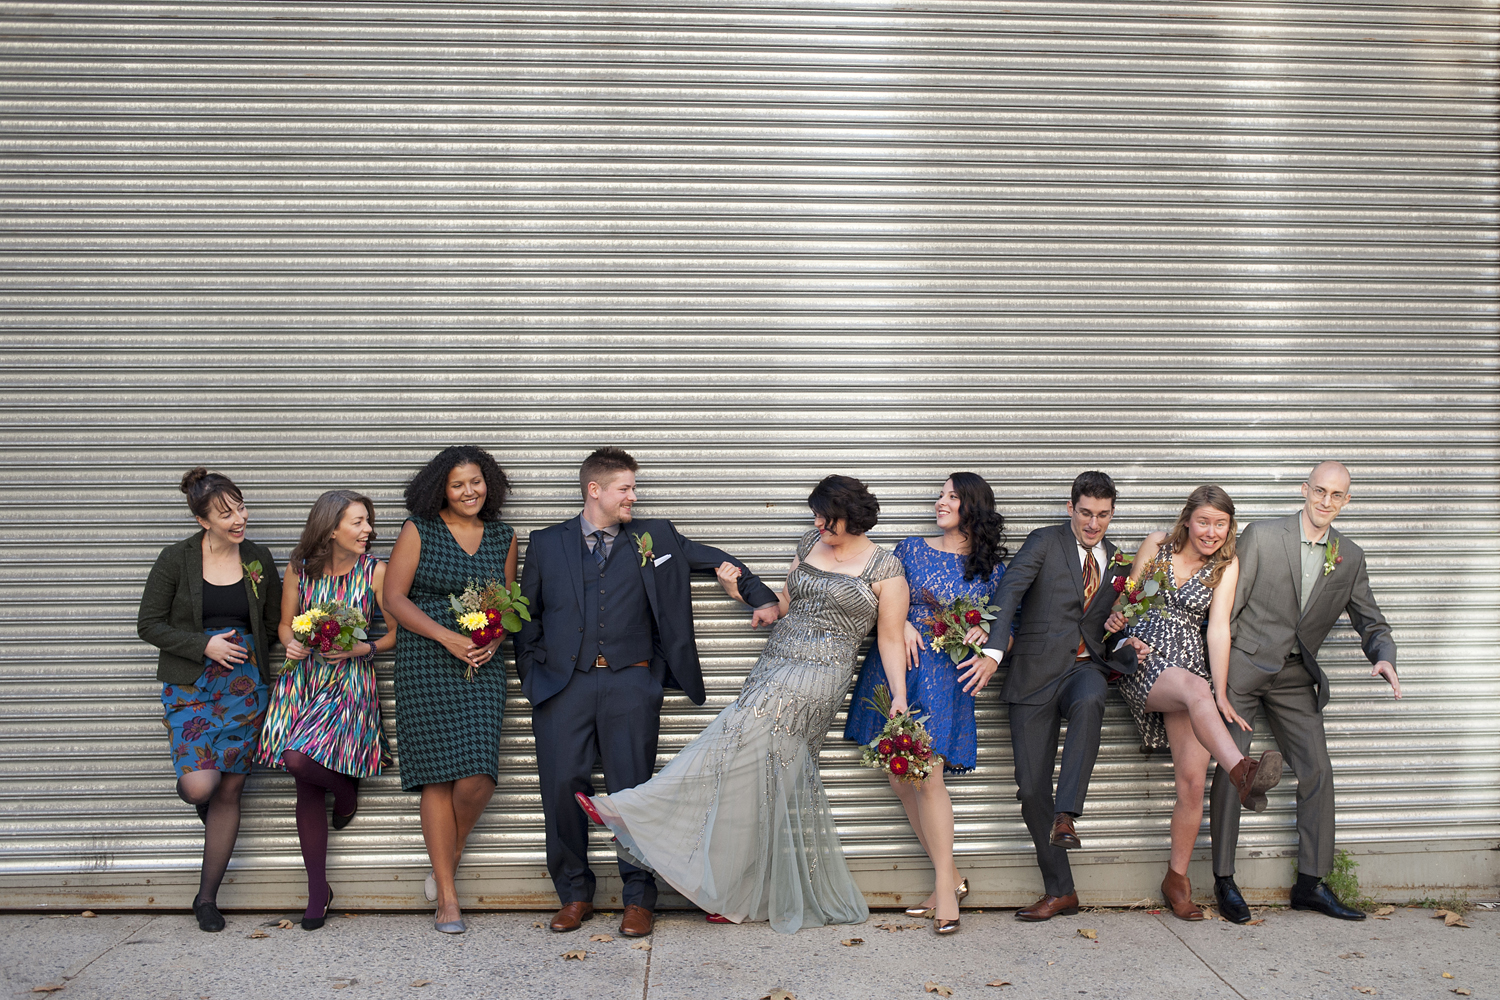 Eclectic creative wedding party portrait. Brooklyn wedding photographers